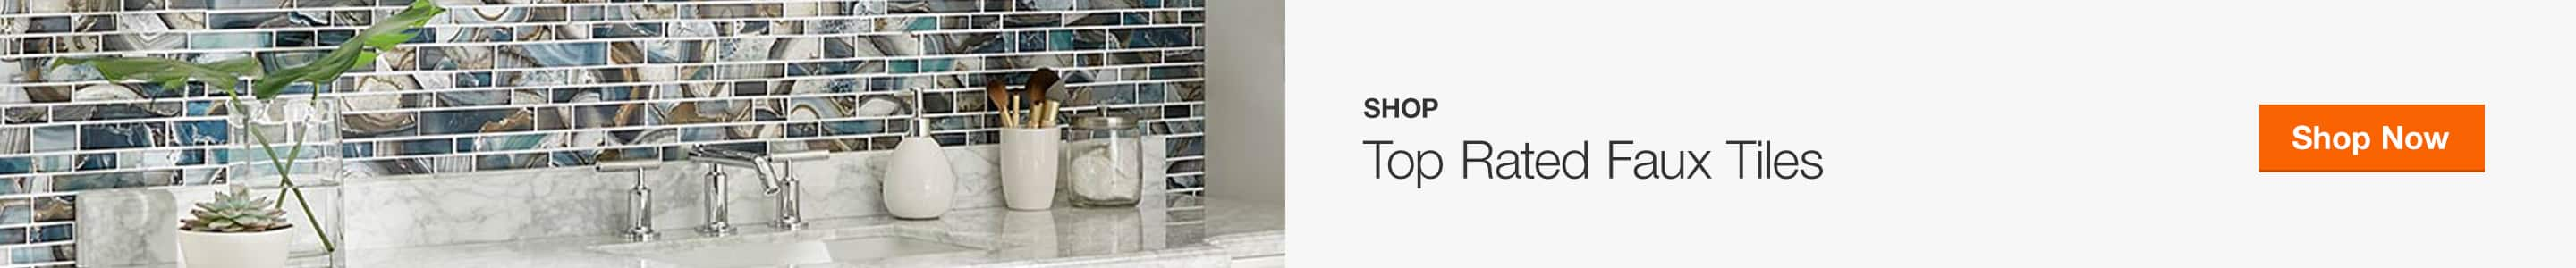 Top Rated Faux Tiles